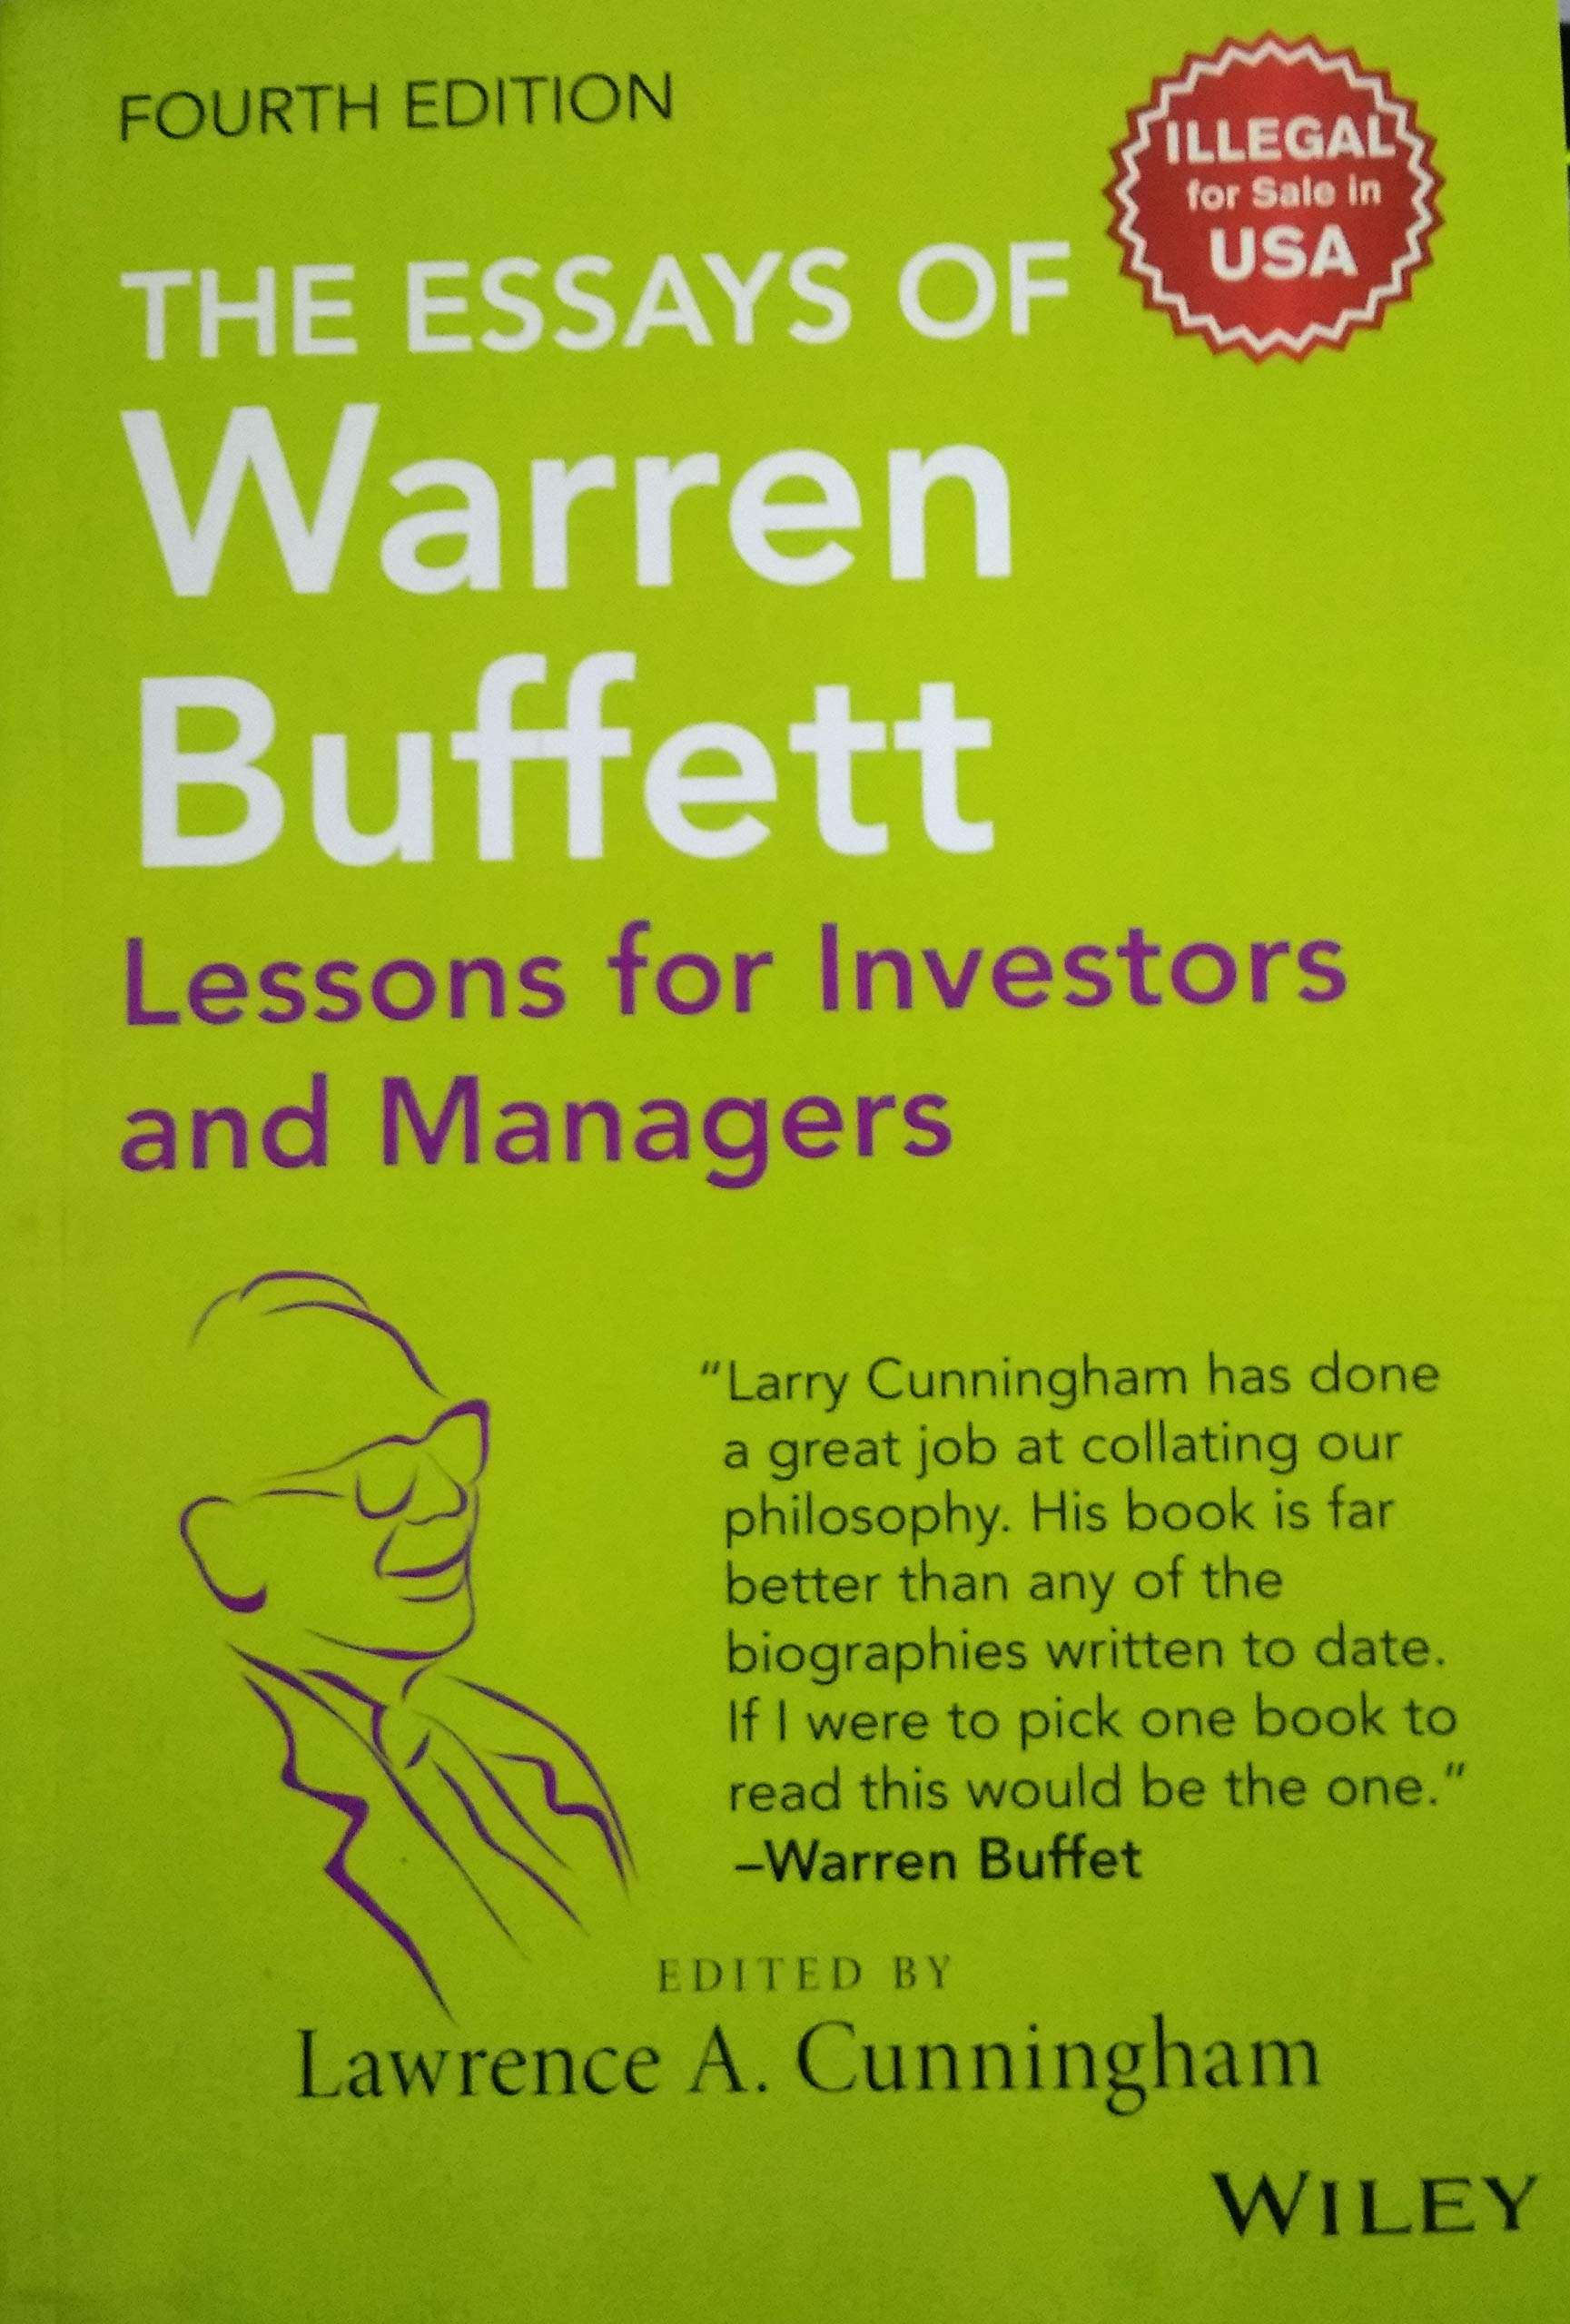 004 Essay Example 81k2r32ddul The Essays Of Warren Buffett Lessons For Investors And Striking Managers 4th Edition Free Pdf Full